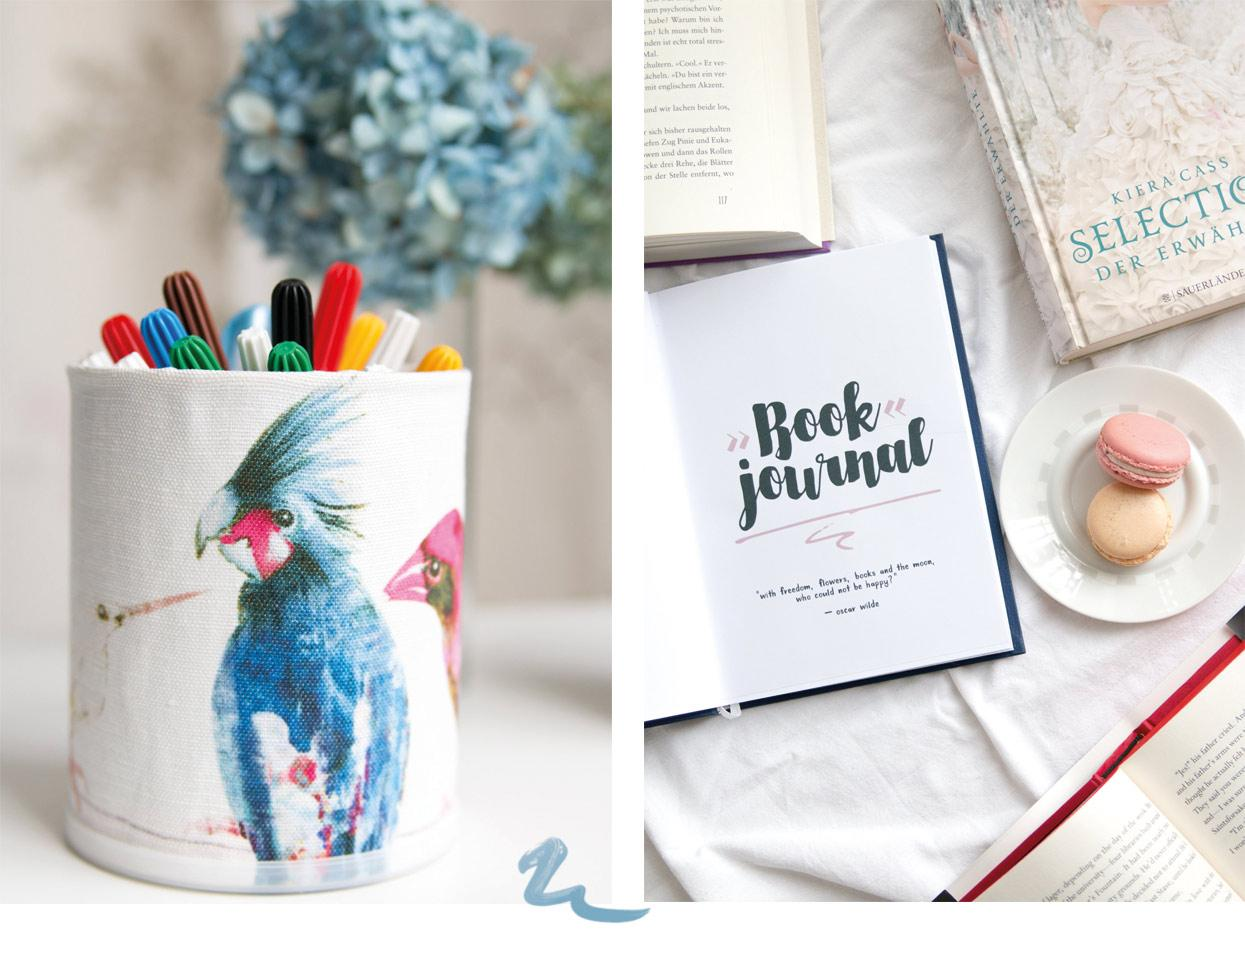 Book Journal DIY Carolinart Lifestyleblog